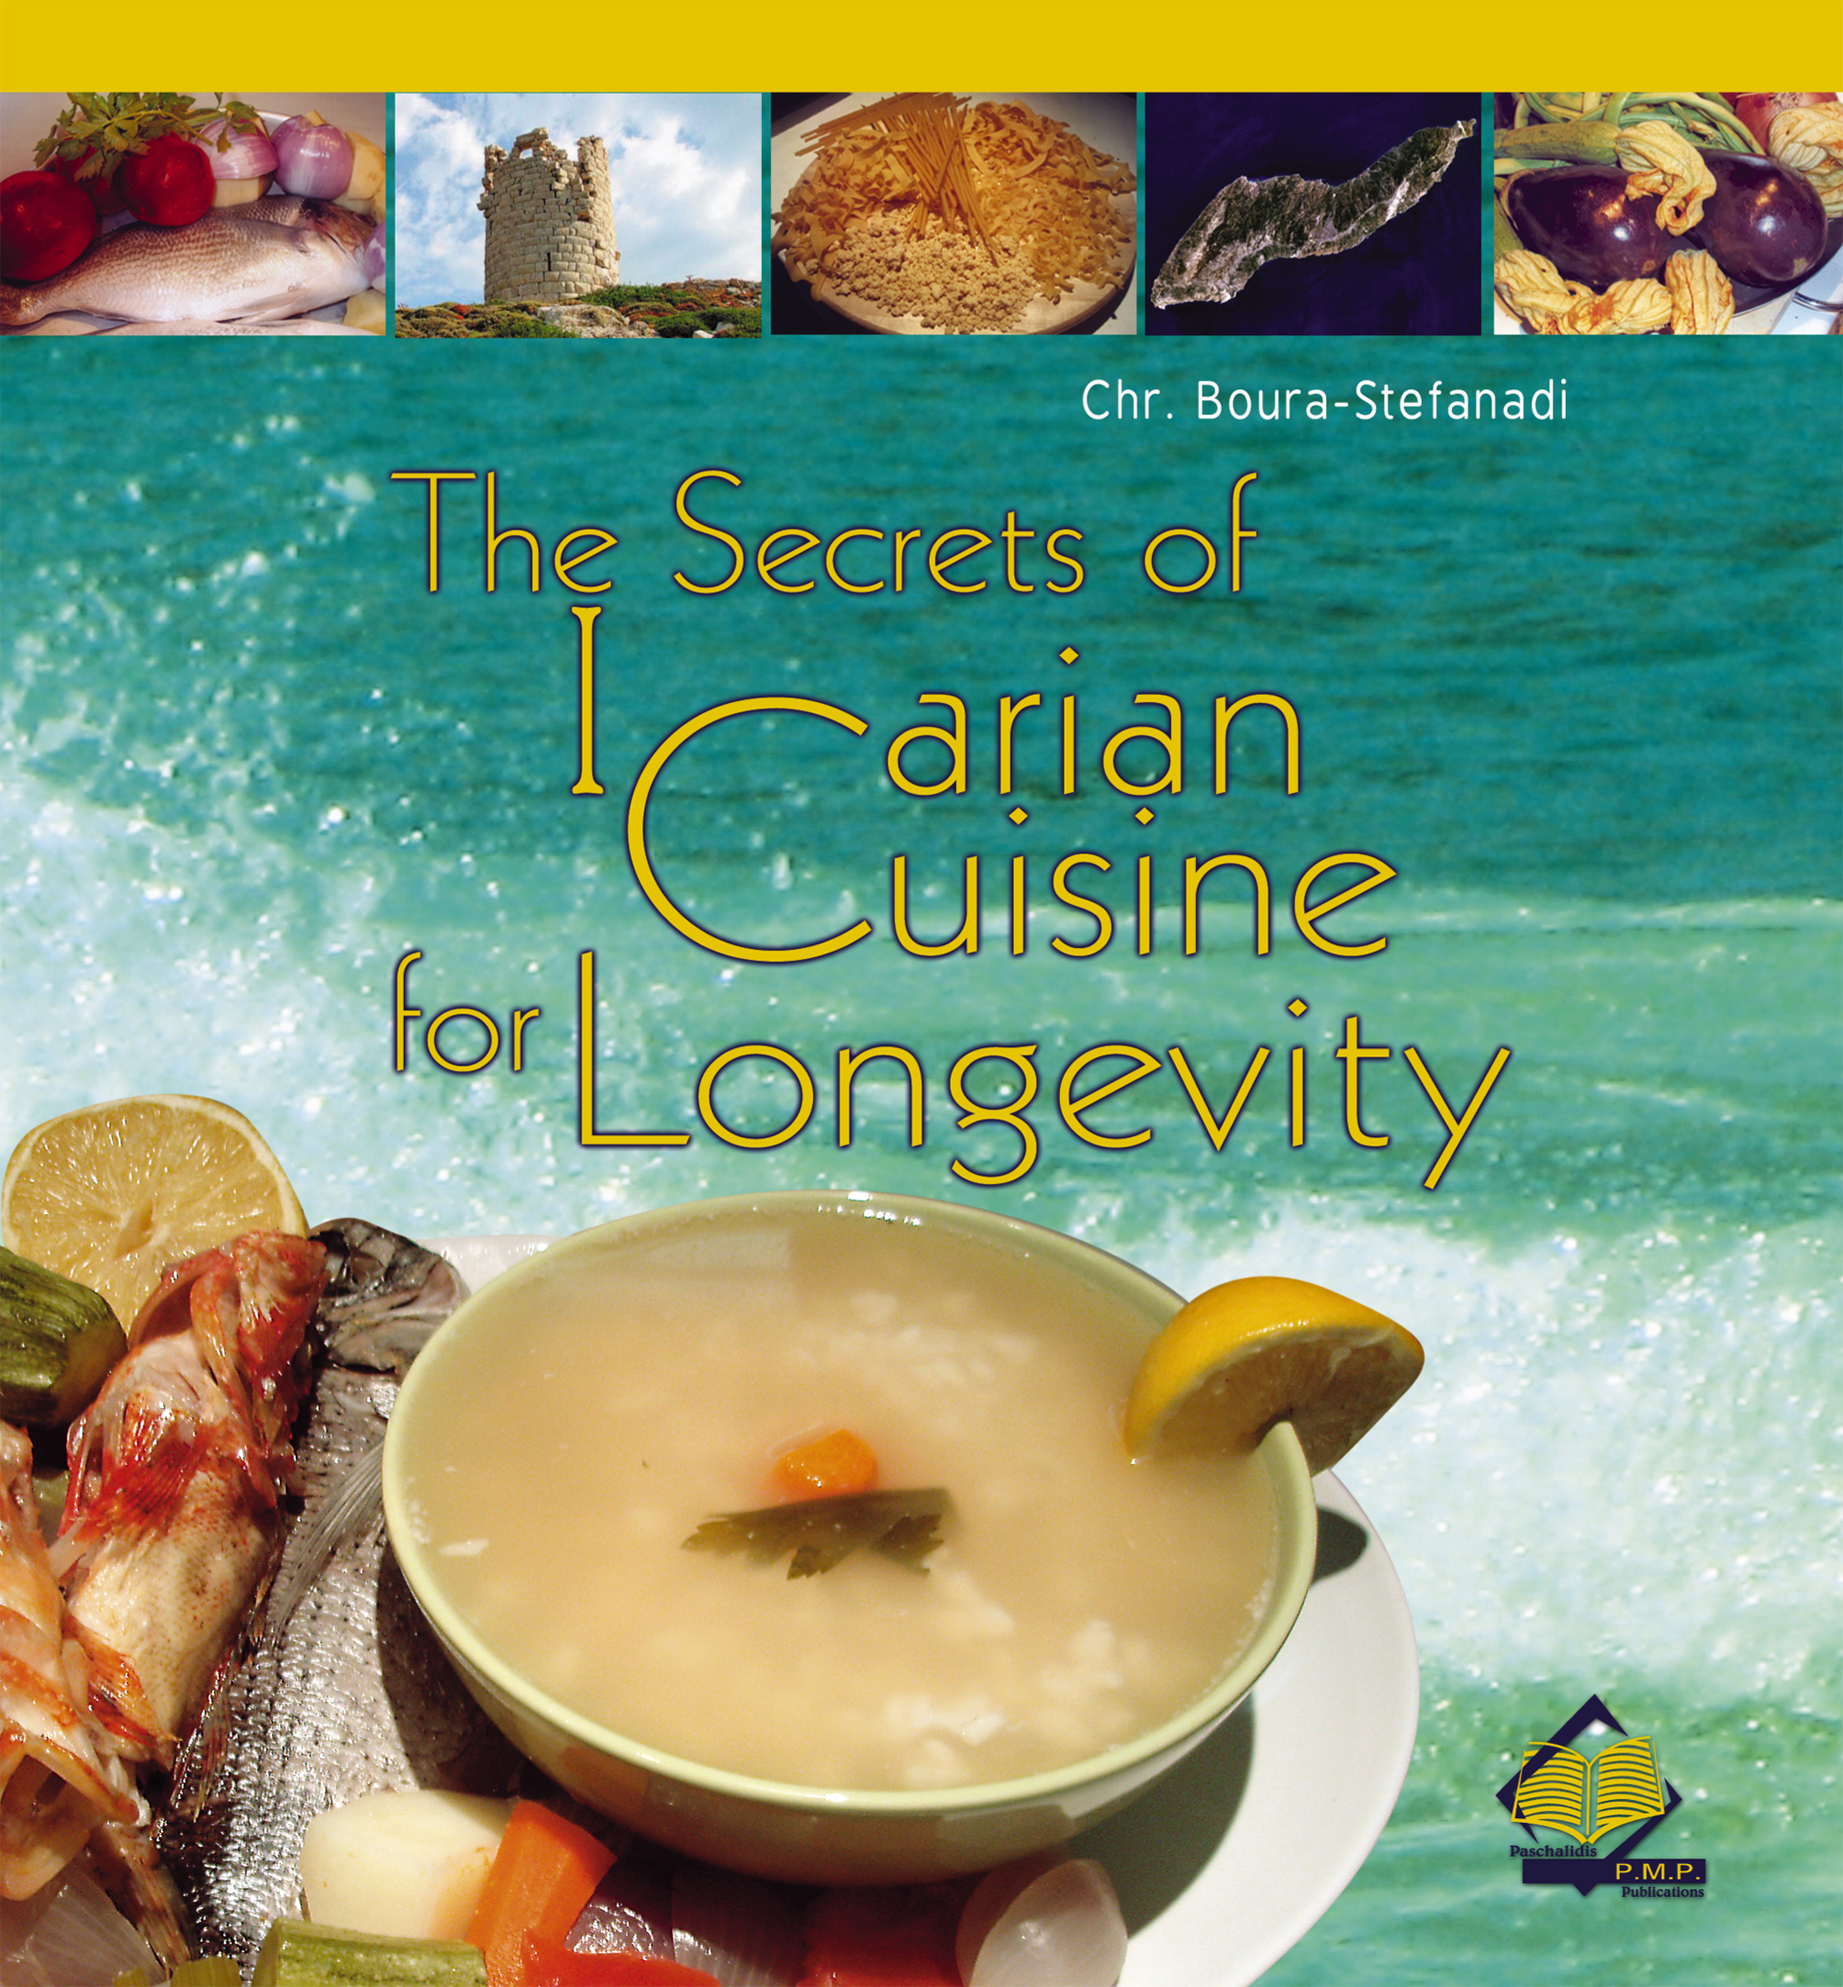 The Secrets of Icarian Cuisine for Longevity